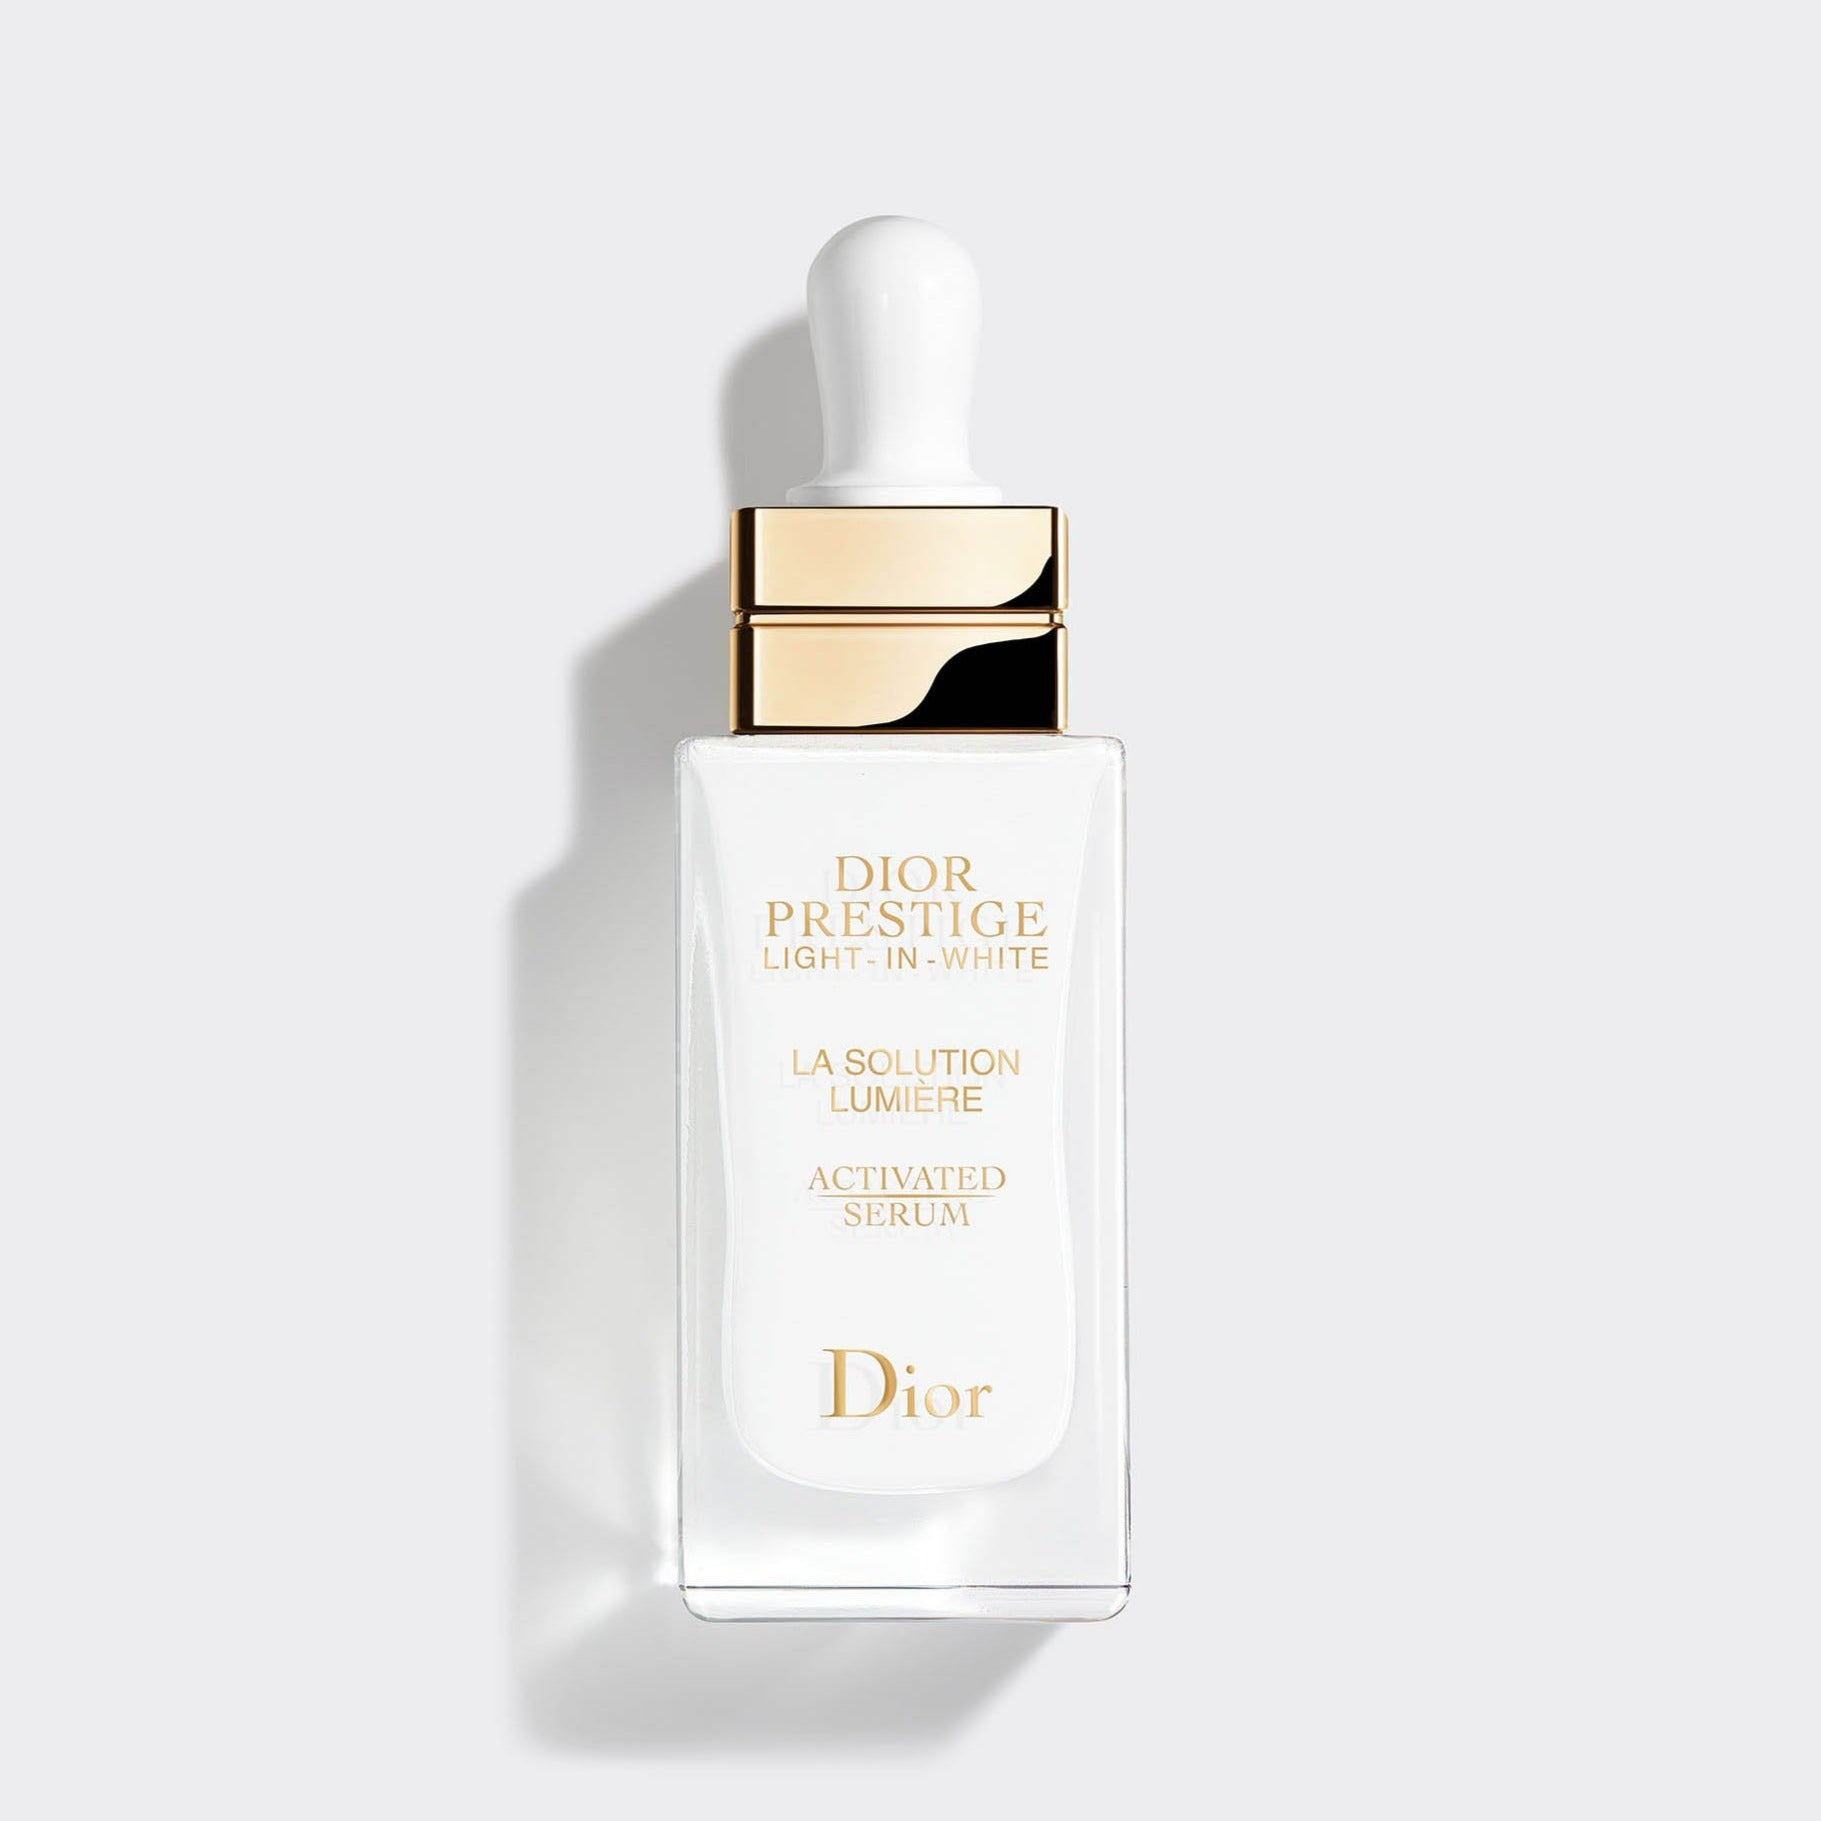 Dior Prestige Light-in-White La Solution Lumière | Activated Serum Exceptional illuminating and revitalising dermo-serum